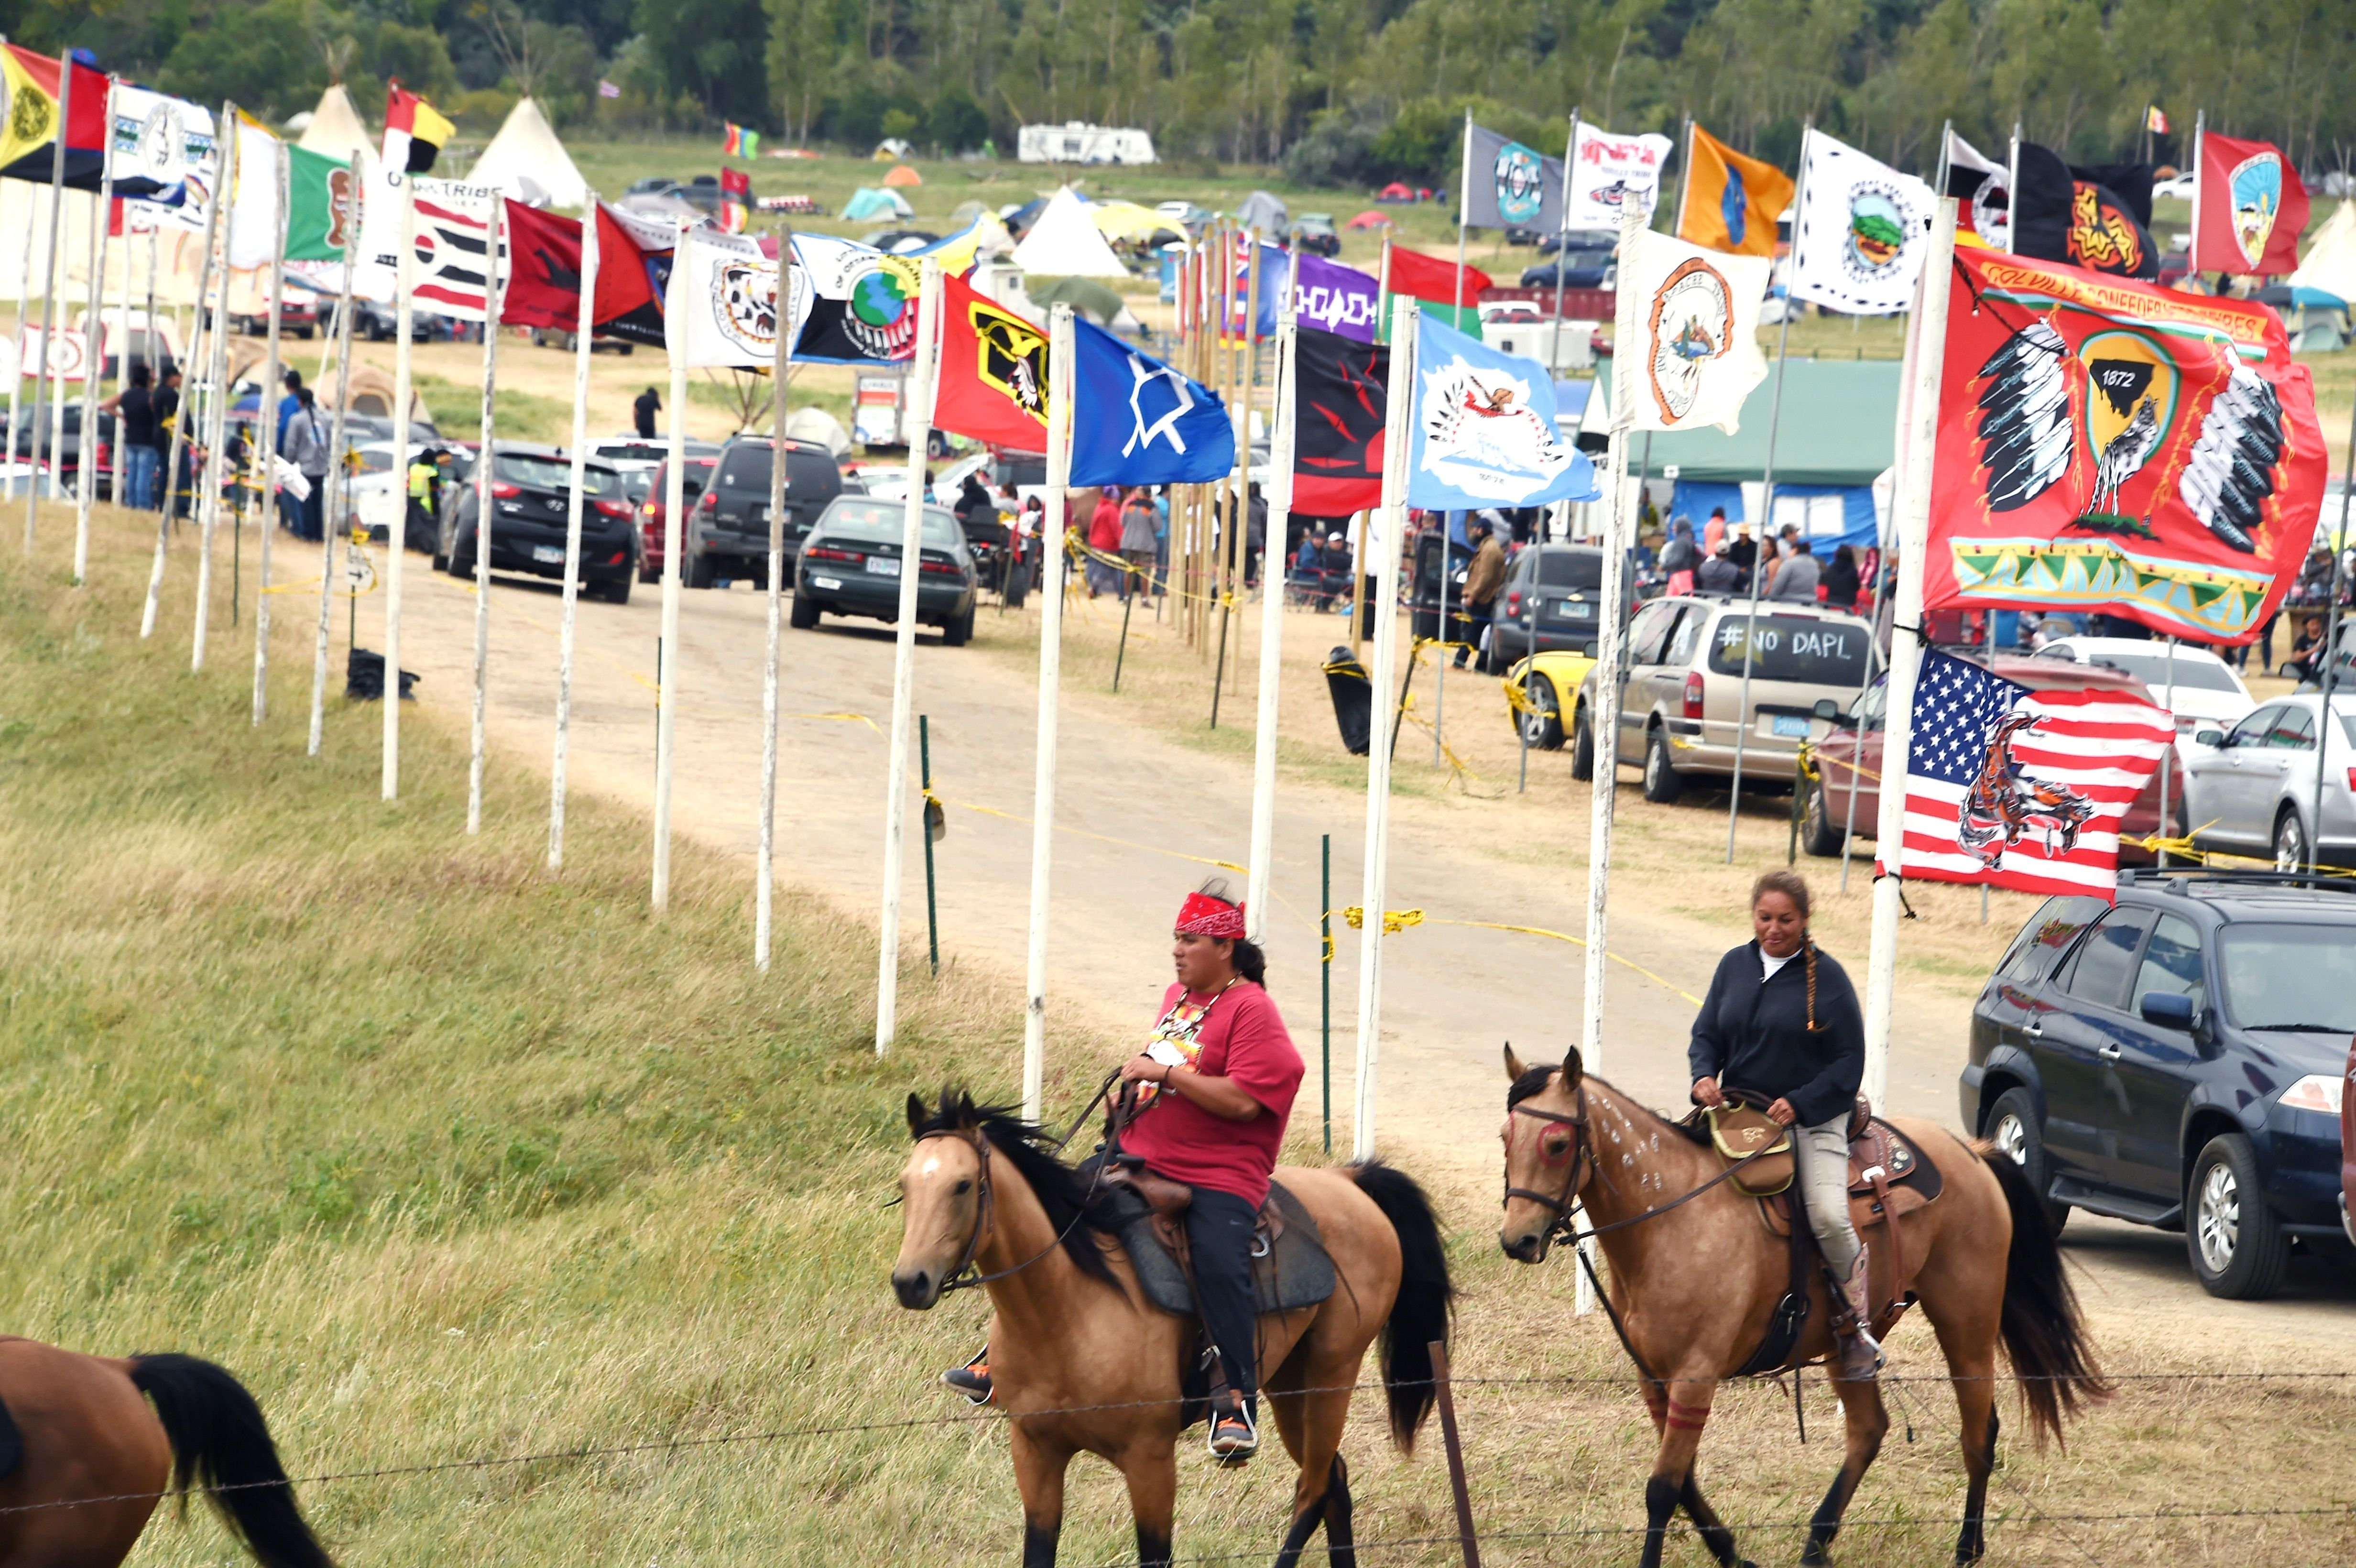 Flags of Native American tribes from across the US and Canada line the entrance to a protest encampment near Cannon Ball, North Dakota where members of the Standing Rock Sioux Tribe and their supporters have gather to voice their opposition to the Dakota Access Pipeline, Sept. 3, 2016.